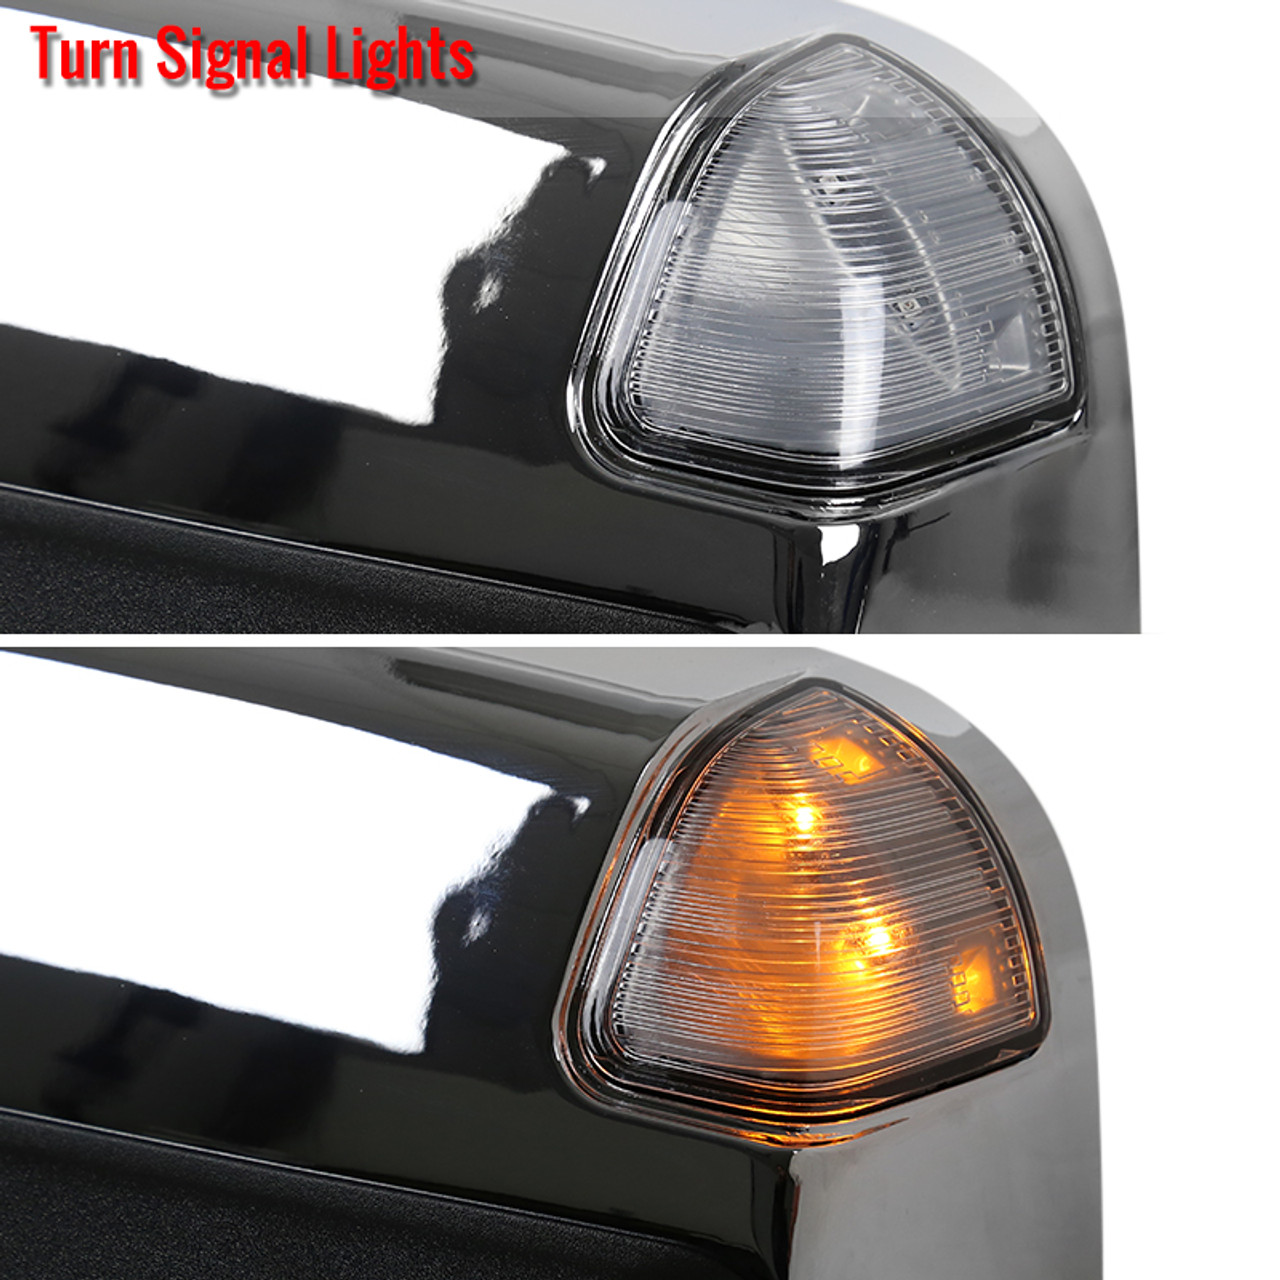 Replacement for Dodge Ram 2013-2018 1500 2500 3500 YITAMOTOR Towing Mirrors Compatible with Dodge Ram Tow Mirrors with Power Heated LED Turn Signal Light Puddle Lamp